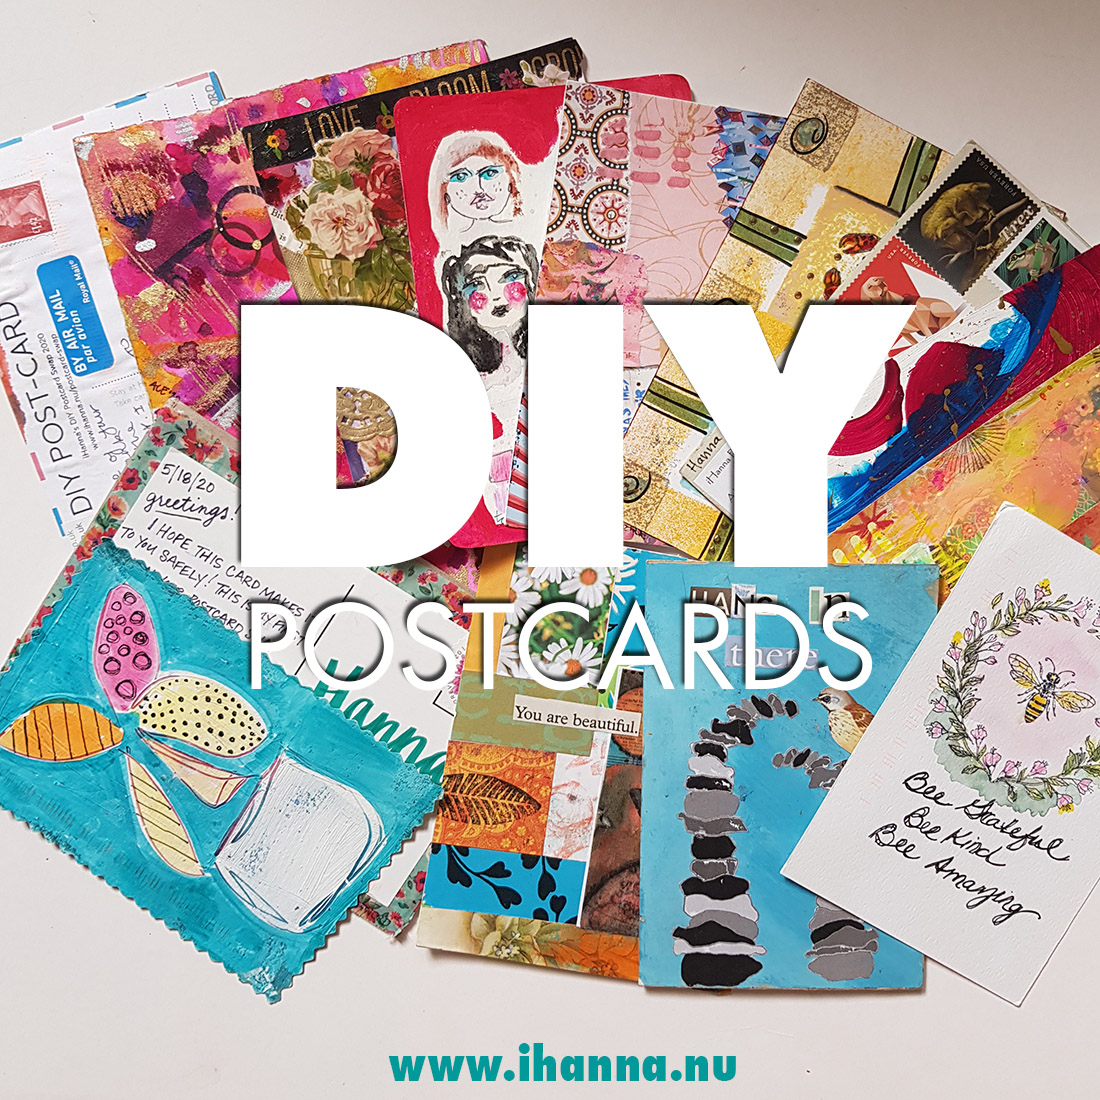 DIY Postcards sent to iHanna in the DIY Postcard Swap spring 2020 - 10th anniversary year of the swap #mailart